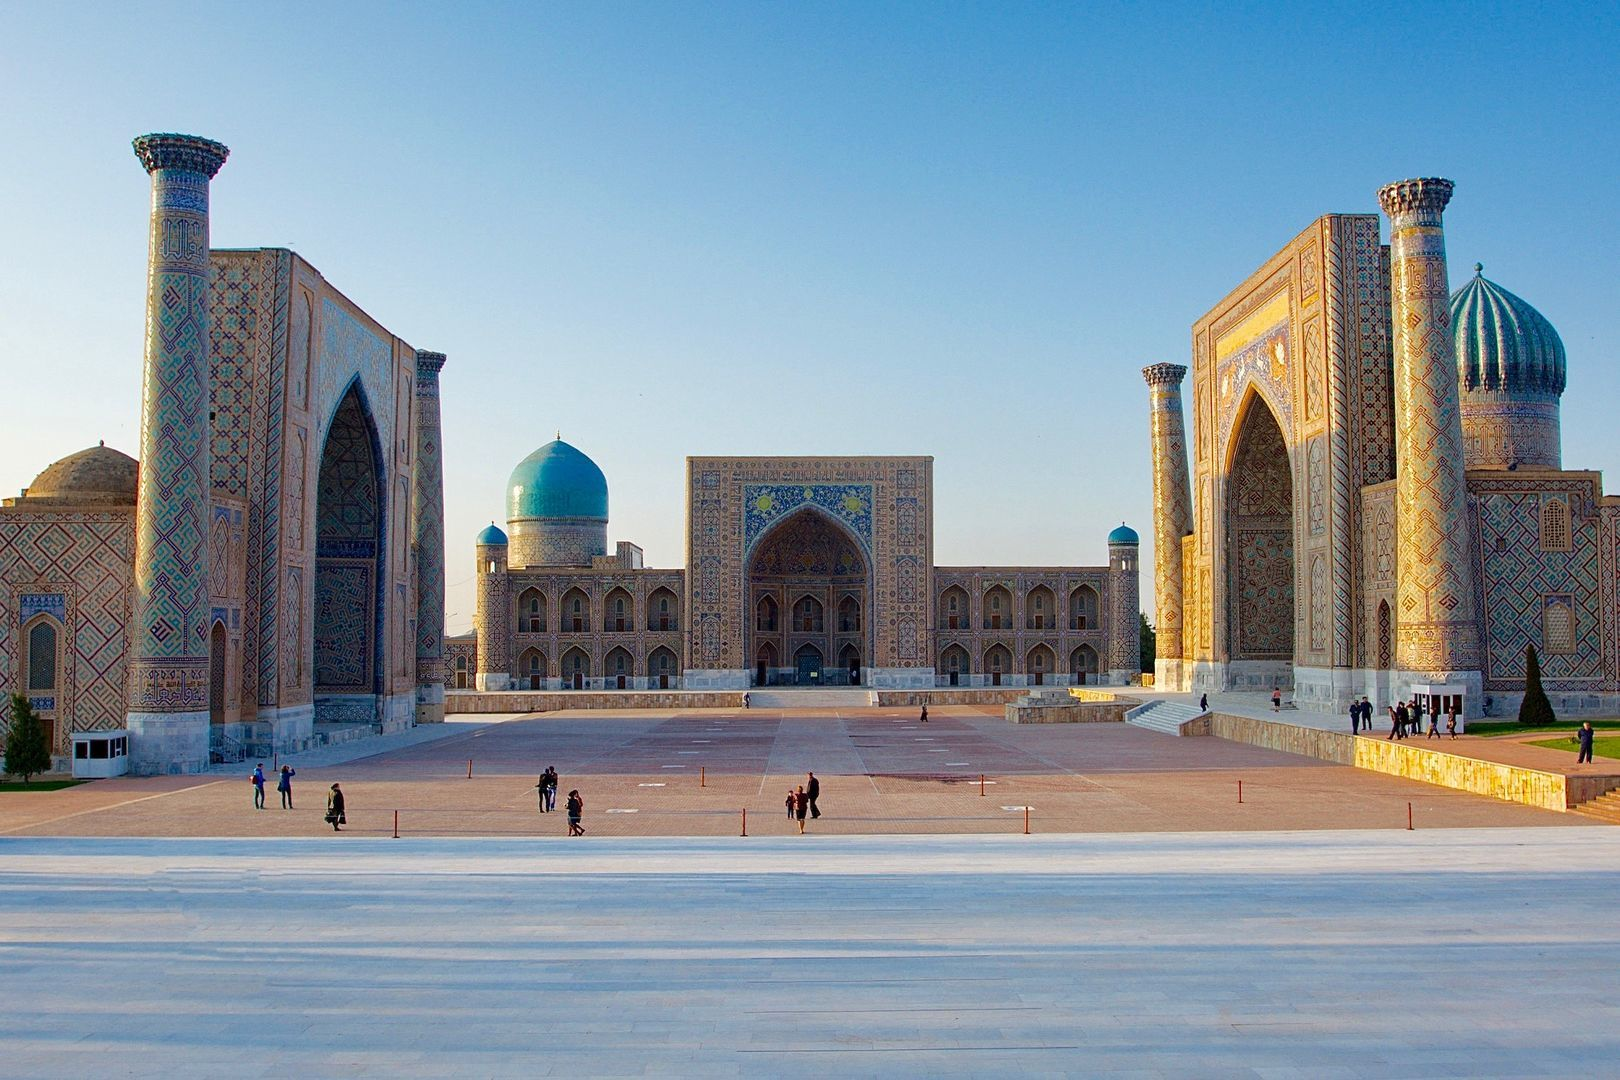 Registan Square is one of the must see highlights in any Uzbekistan Tour